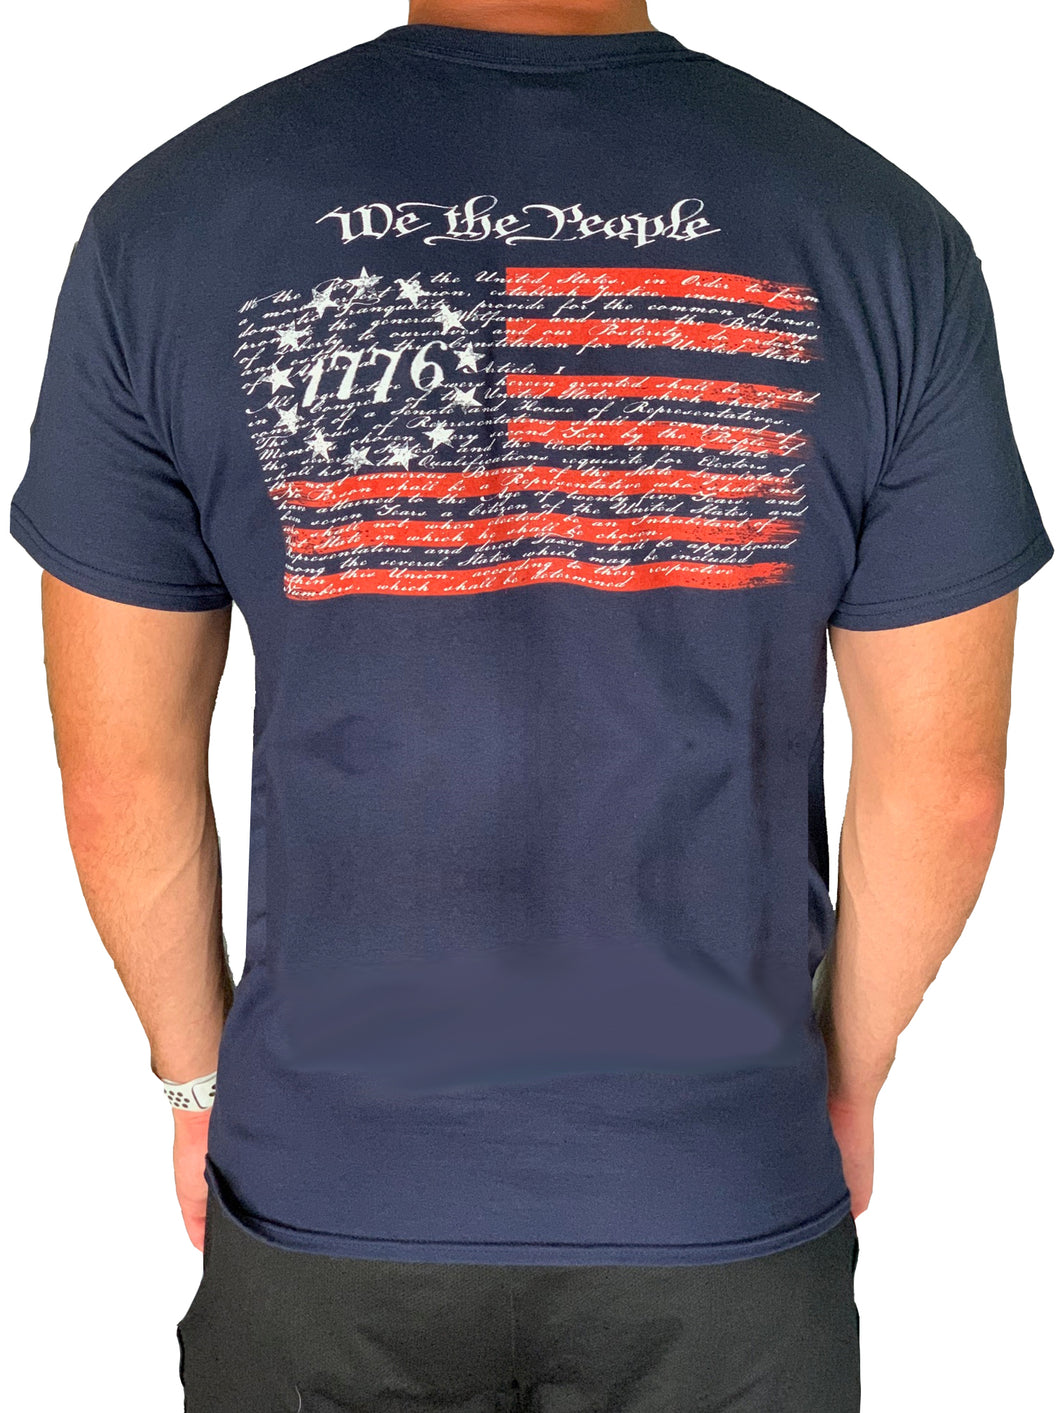 We The People - Navy